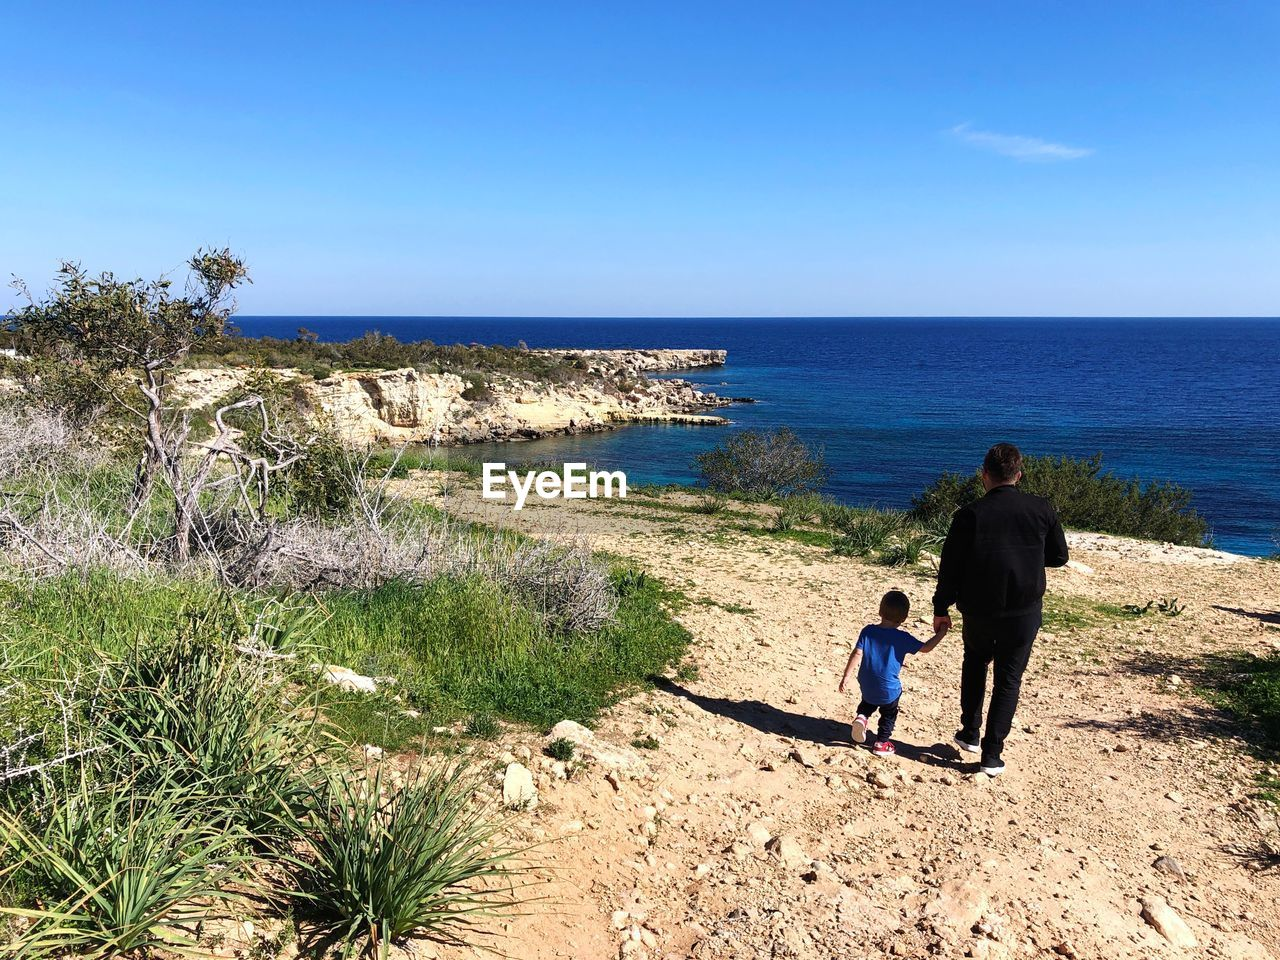 sea, water, sky, real people, two people, nature, beauty in nature, rear view, scenics - nature, full length, men, day, beach, horizon, horizon over water, land, lifestyles, togetherness, plant, outdoors